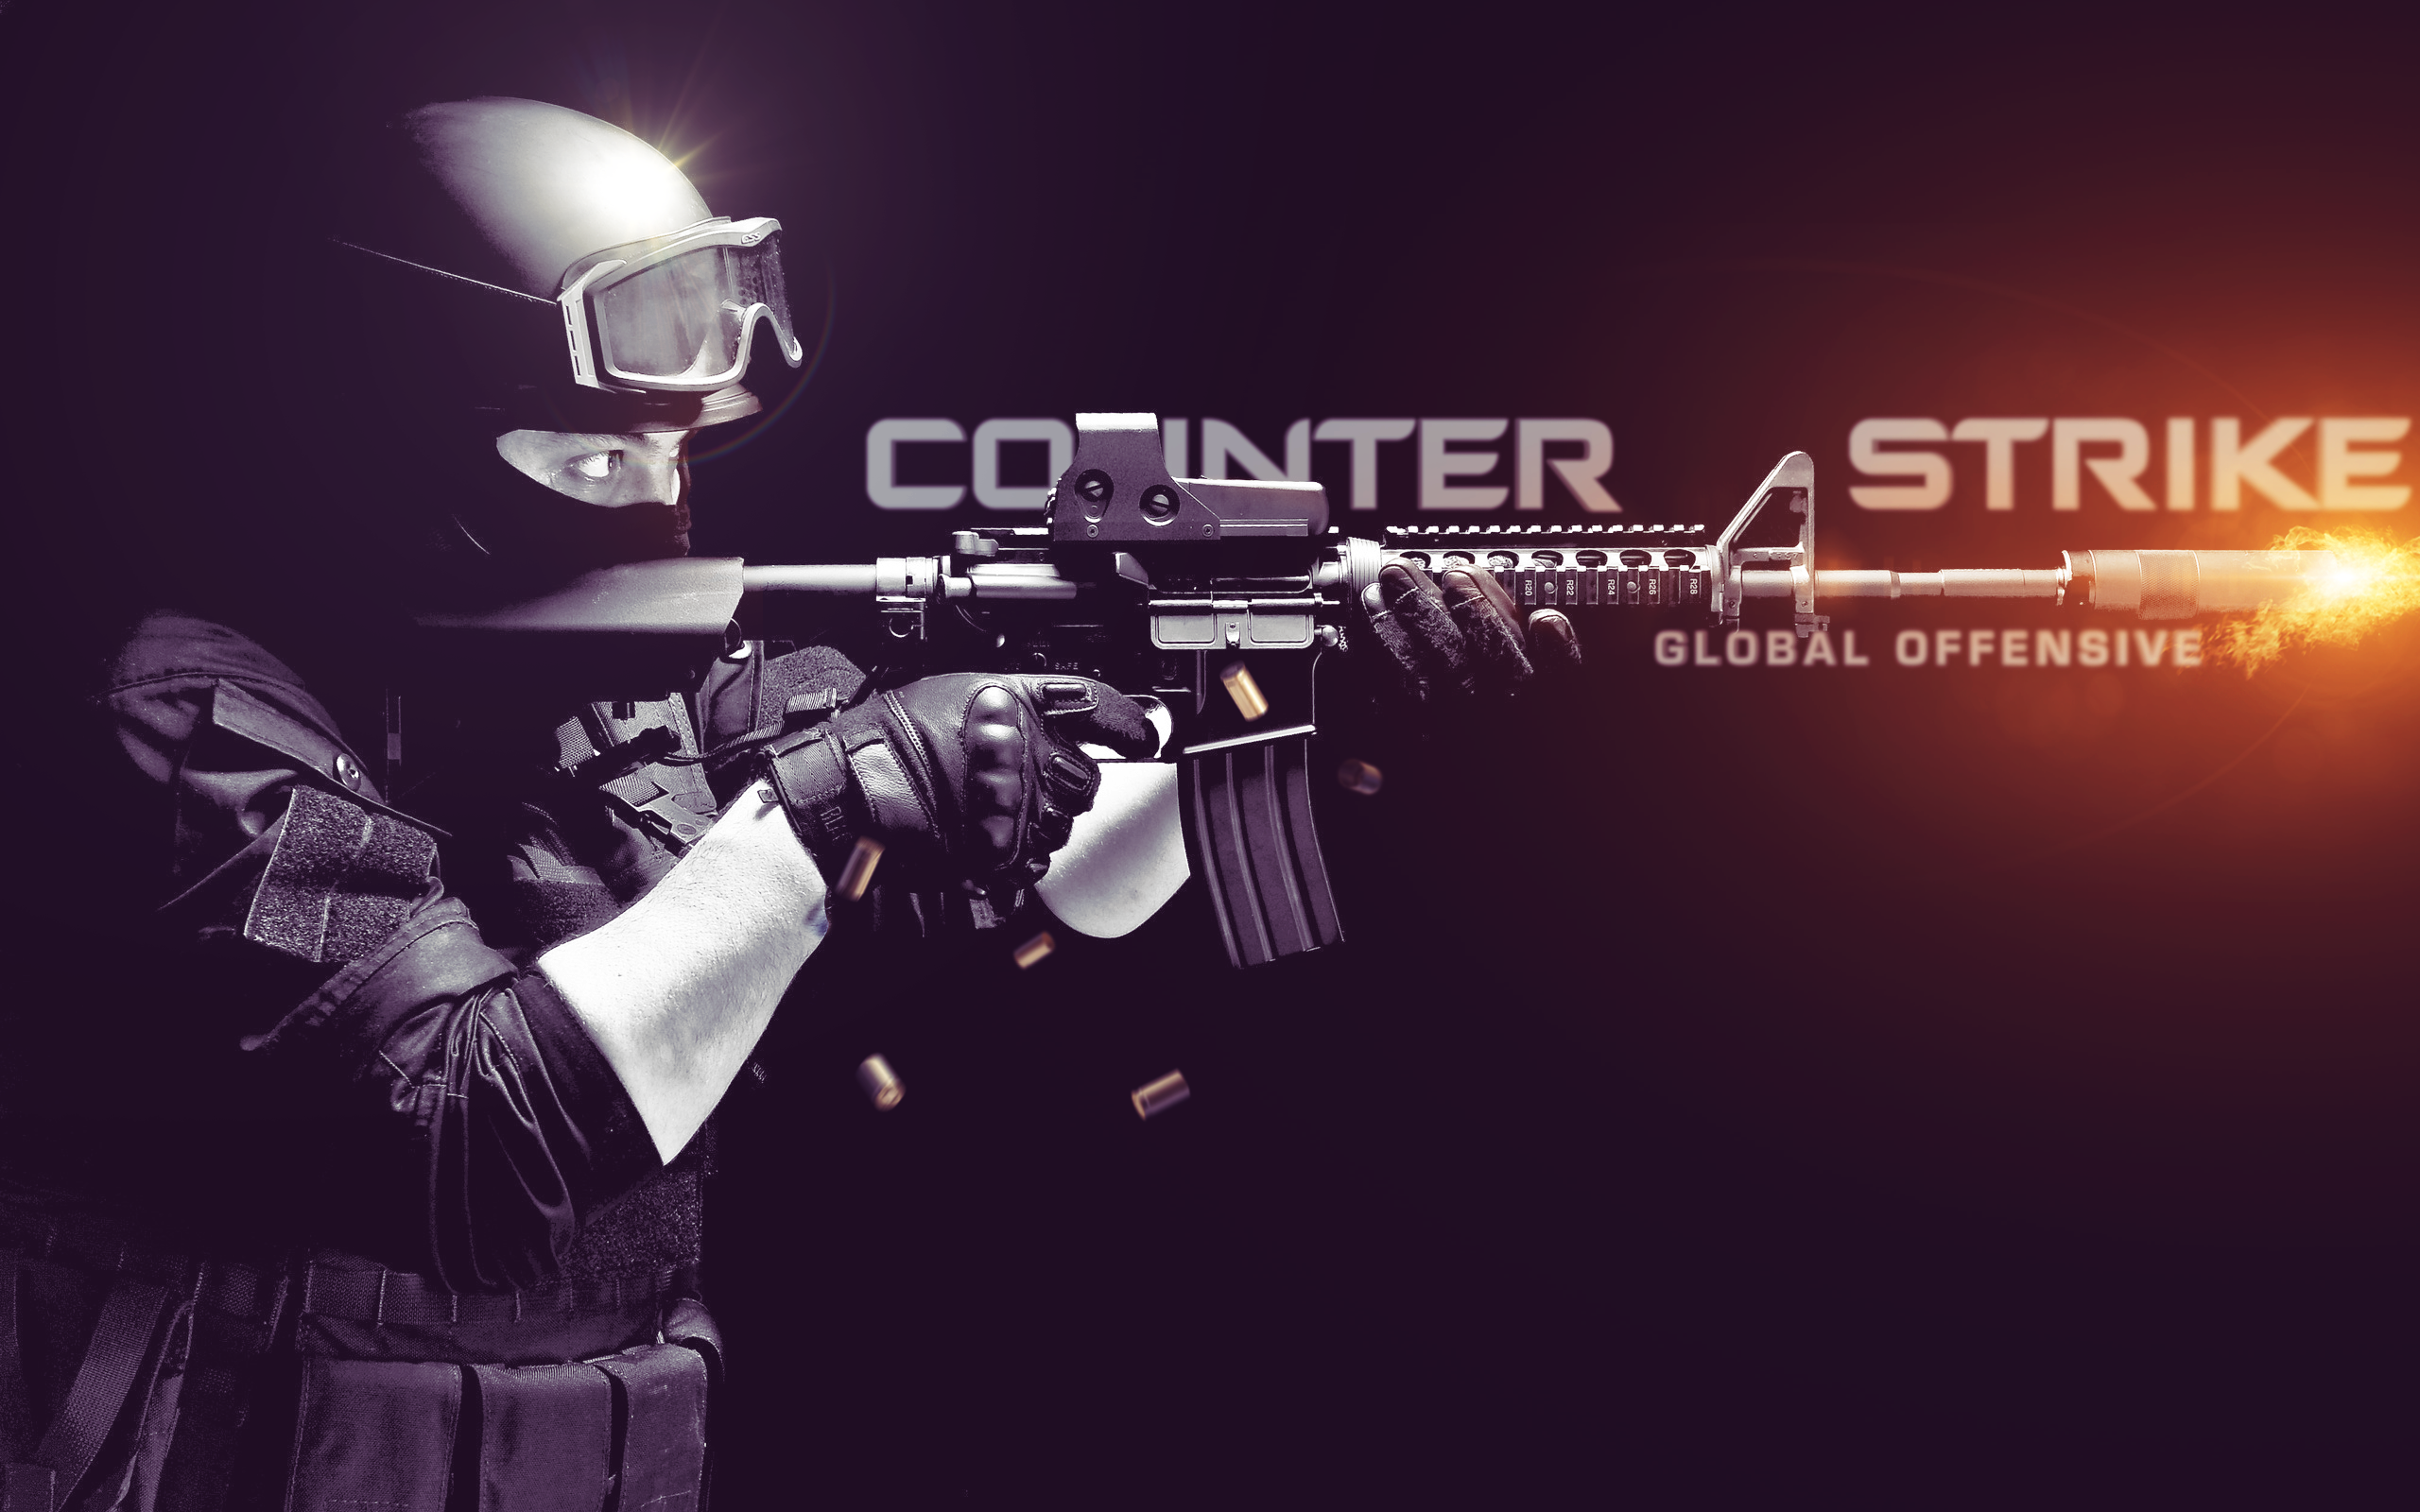 Index of /t/o/toorrentgames/game/Counter Strike Global Offensive